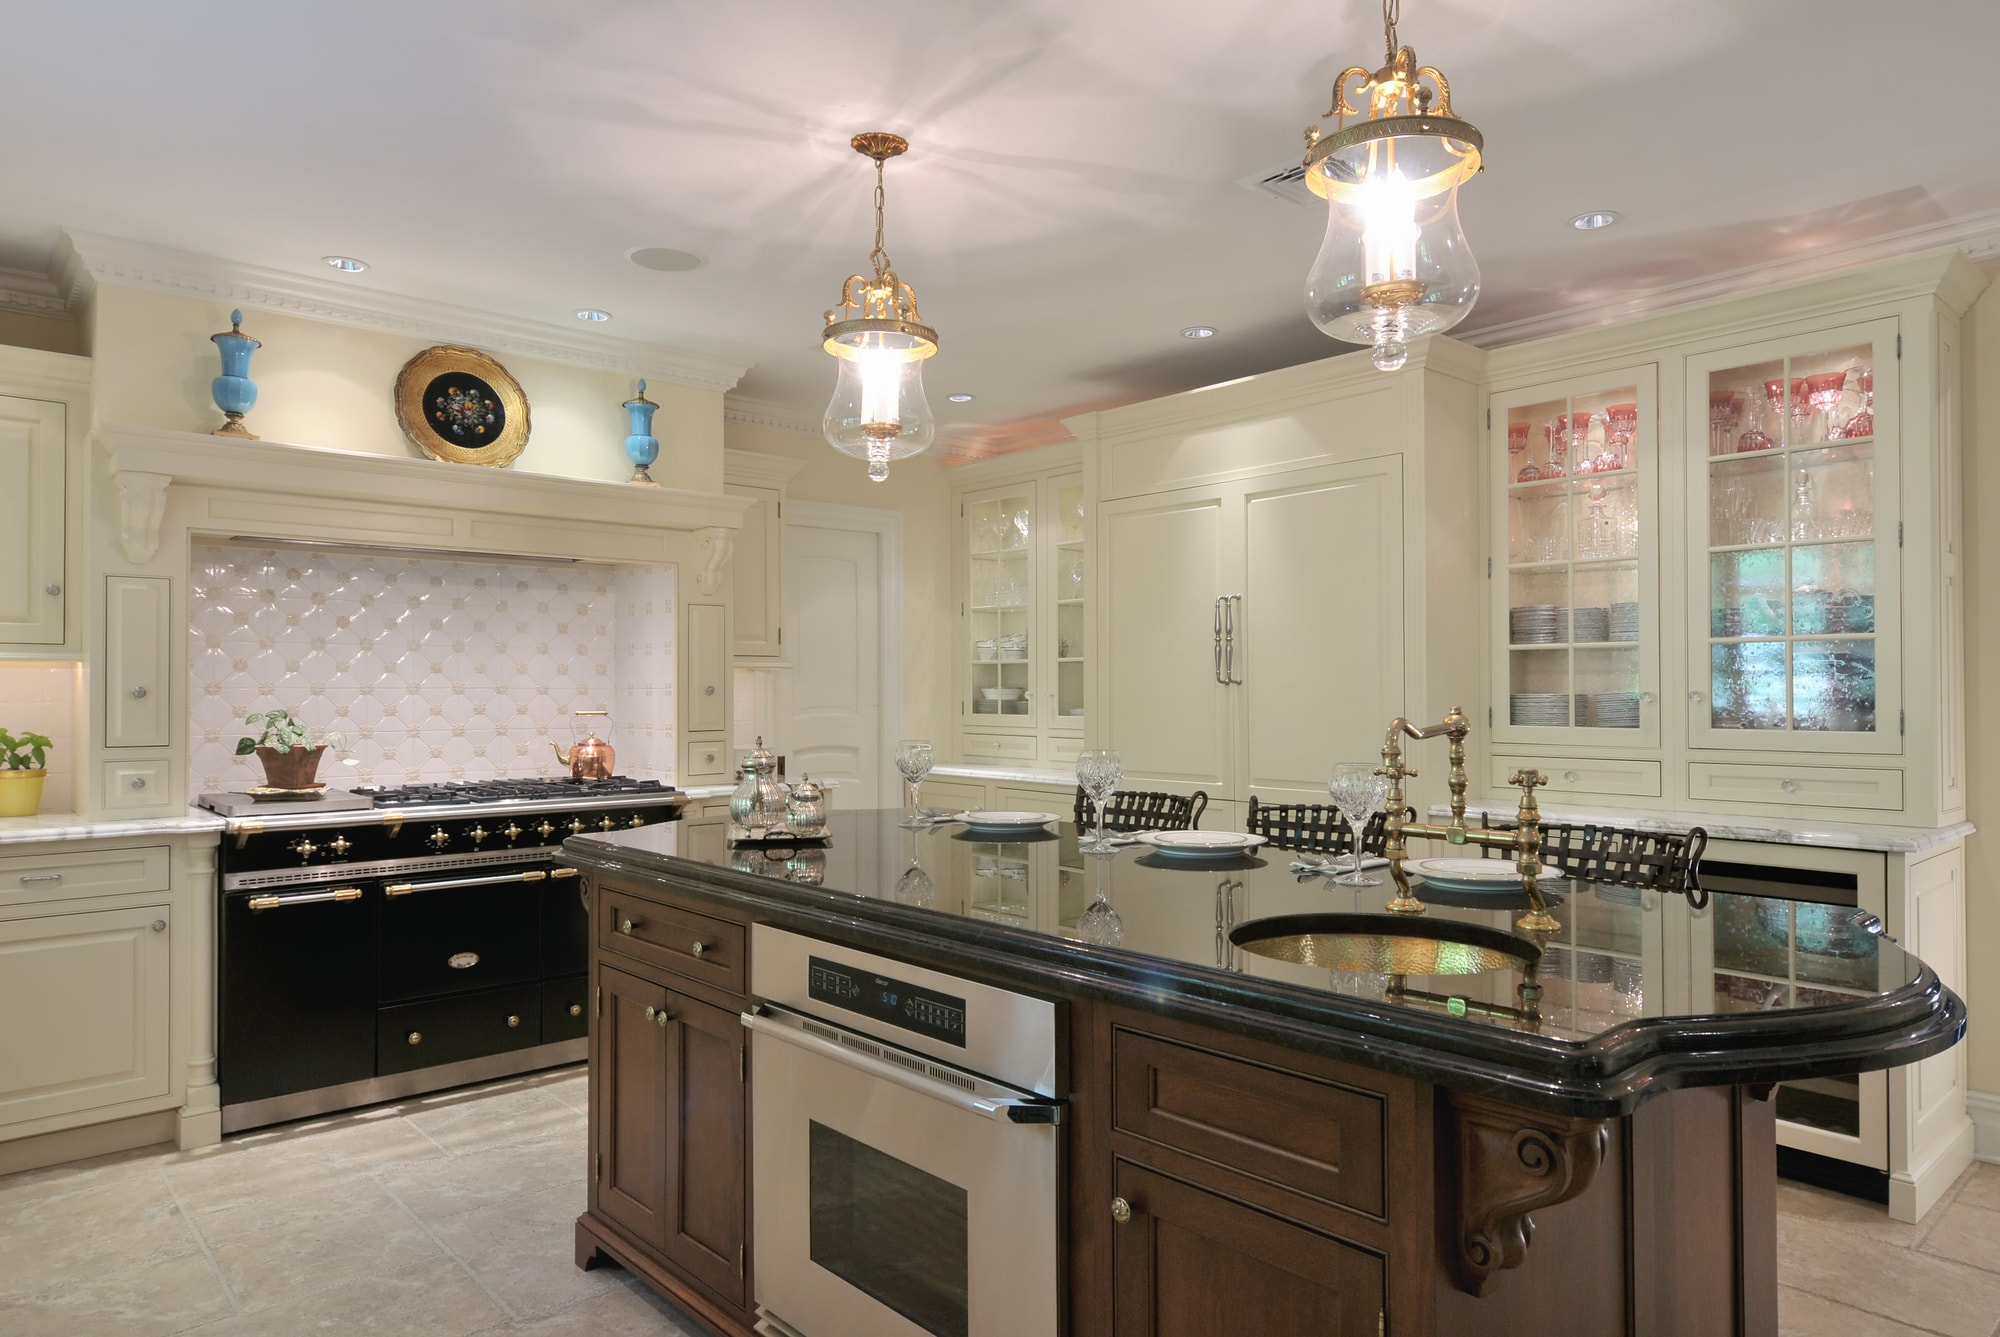 Traditional style kitchen with black range oven